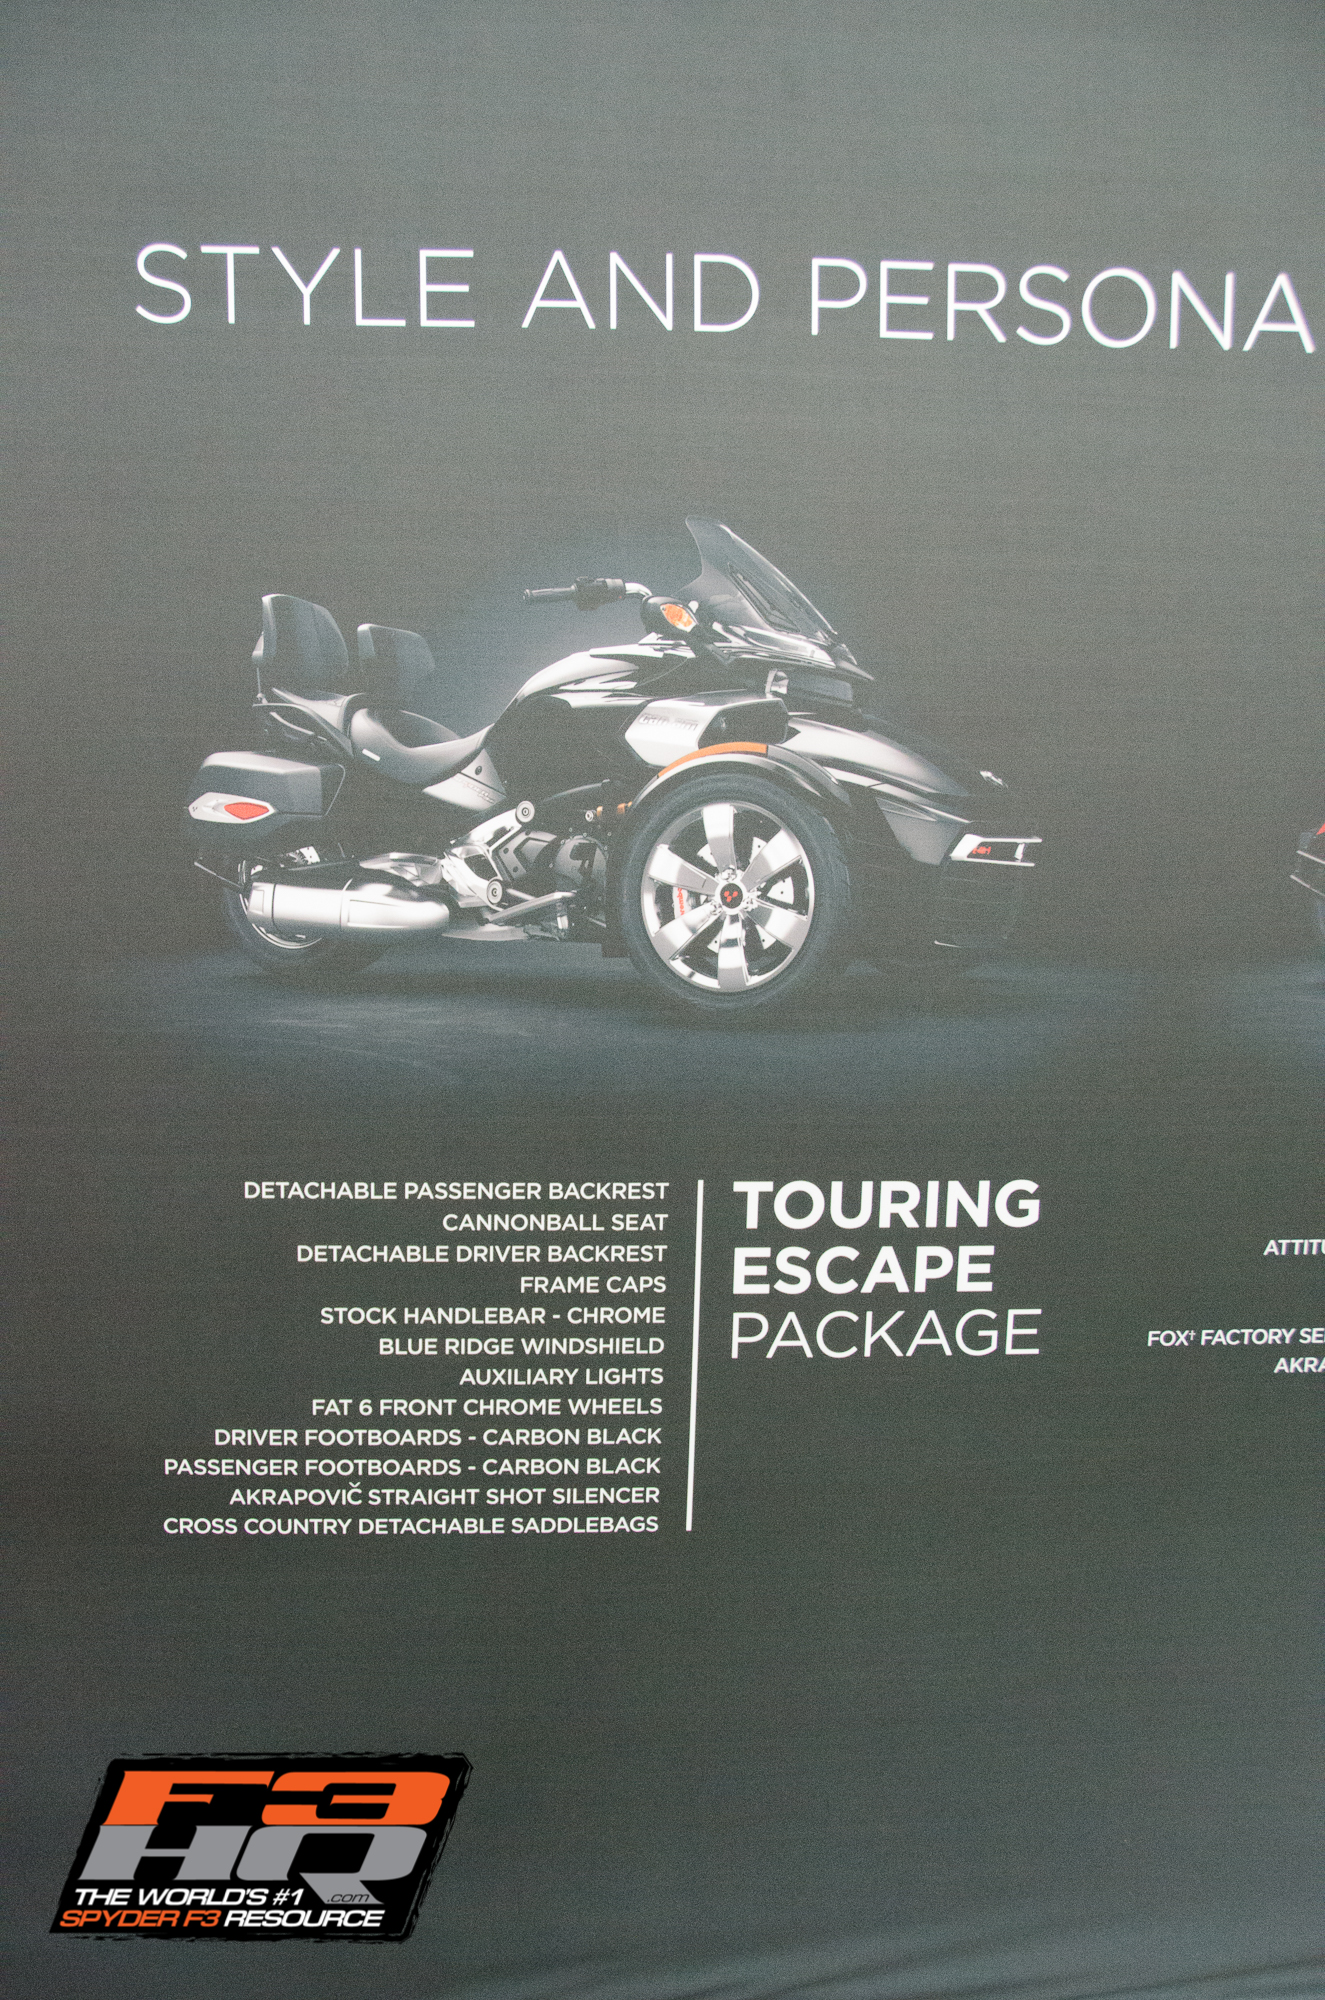 2014 Can-Am Spyder F3 - Product Launch and Ryde-76-42.jpg